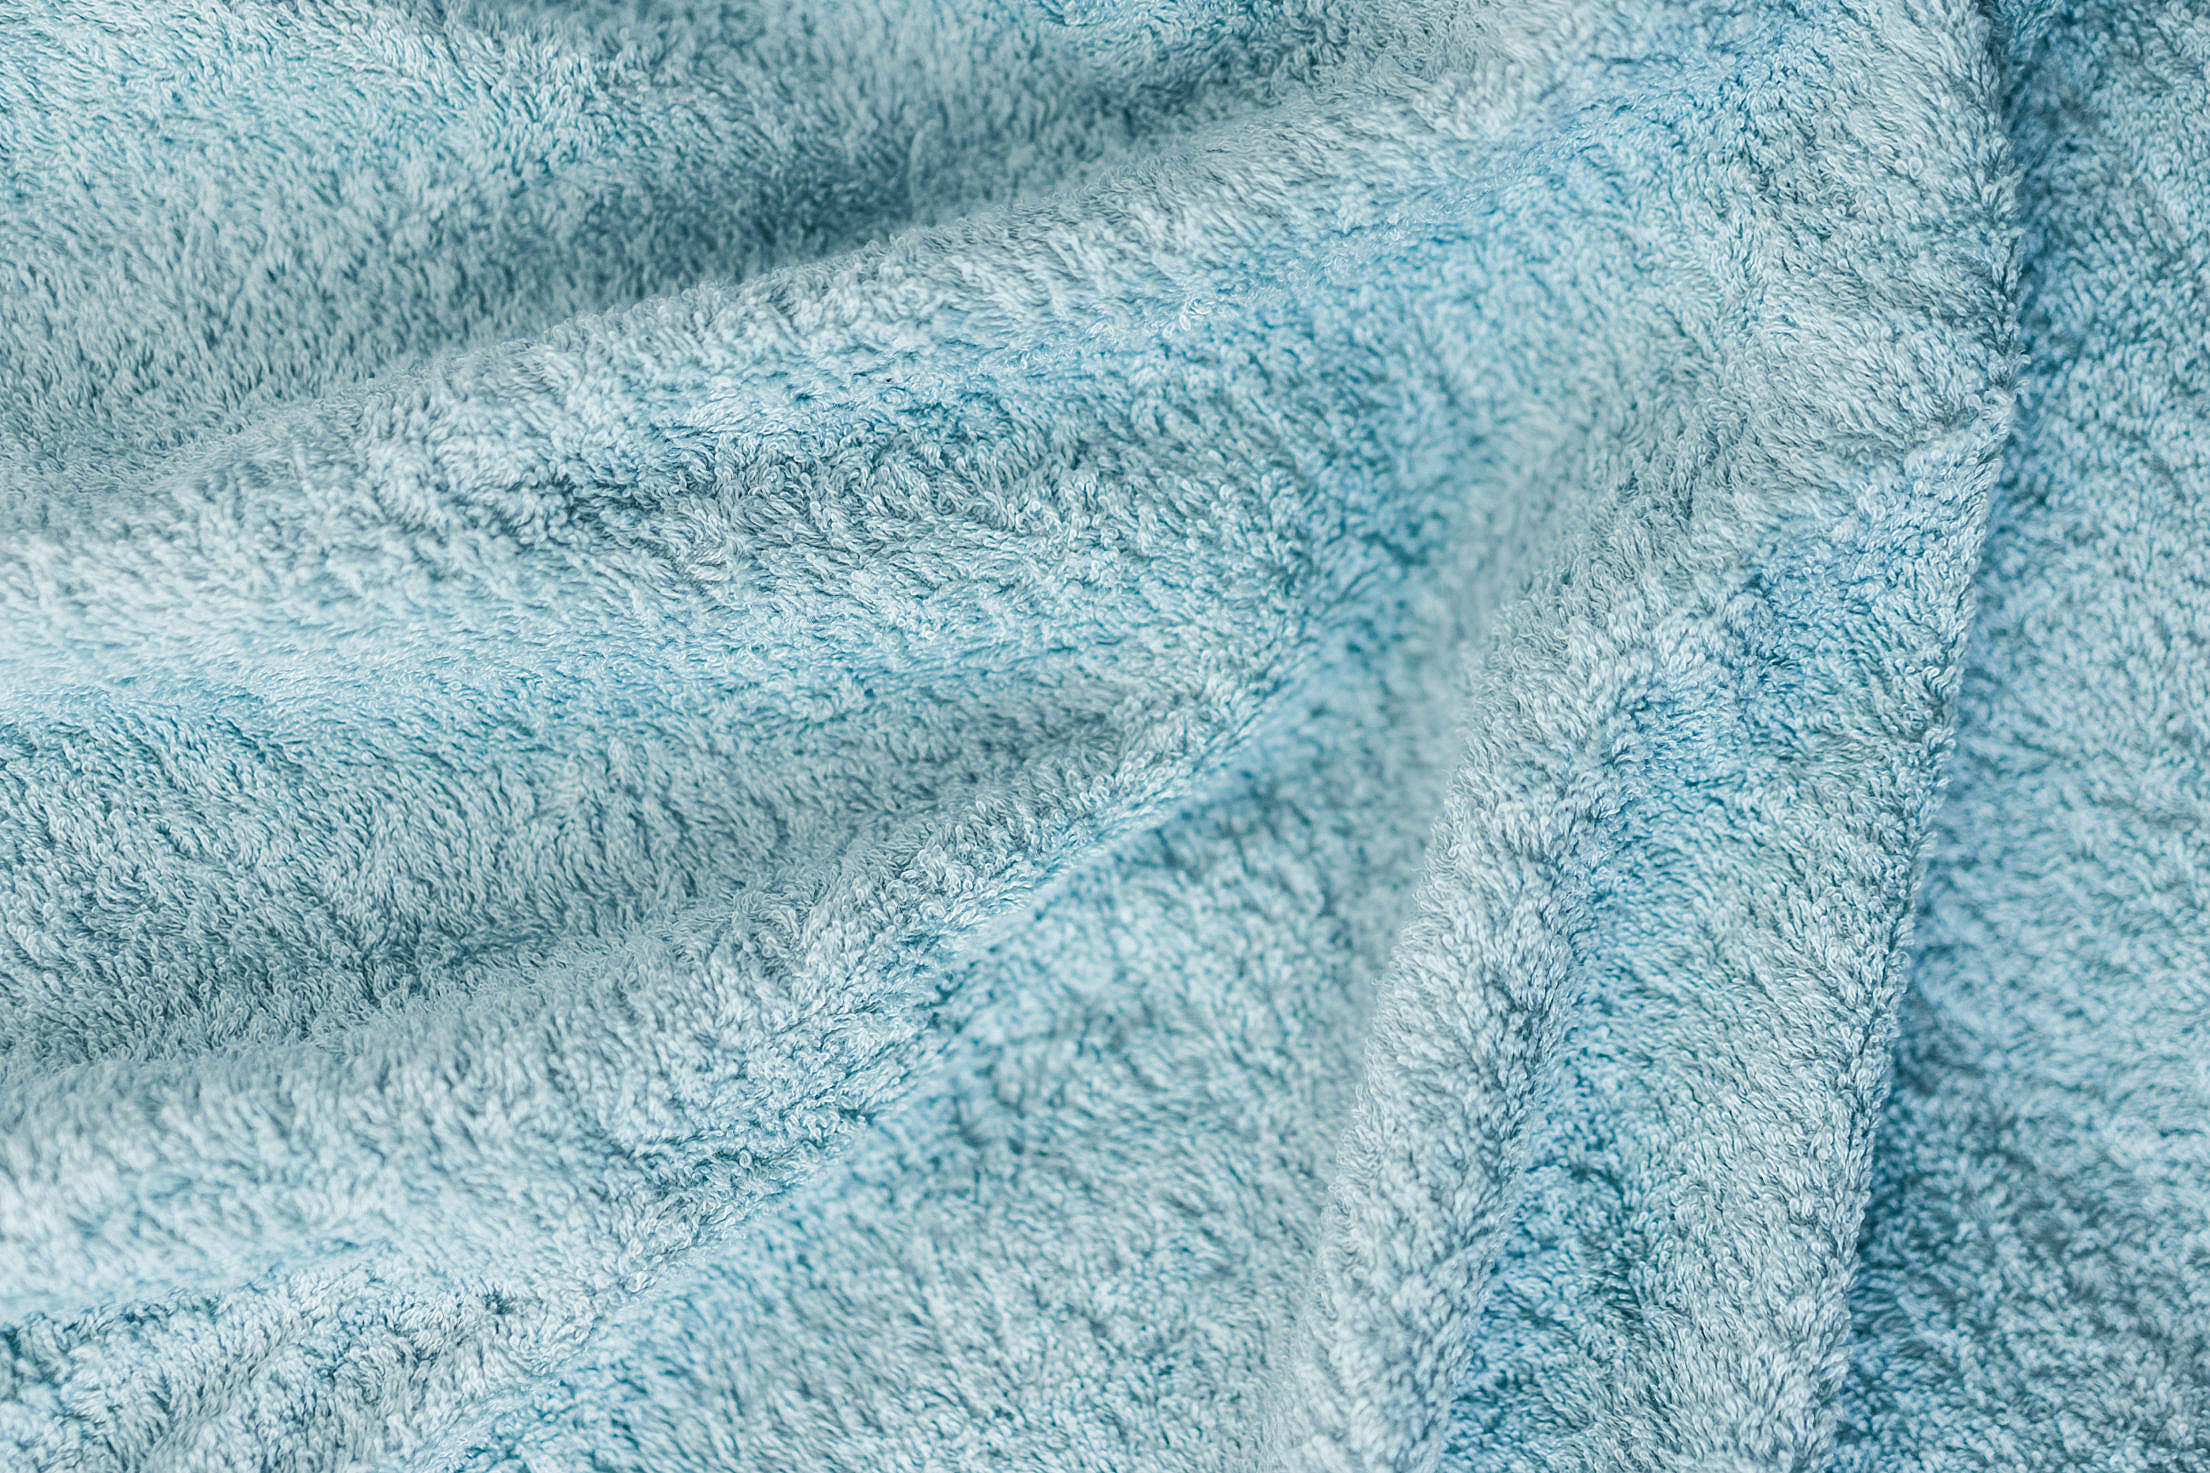 Soft Cotton Blue Towel Close Up Background Free Stock Photo